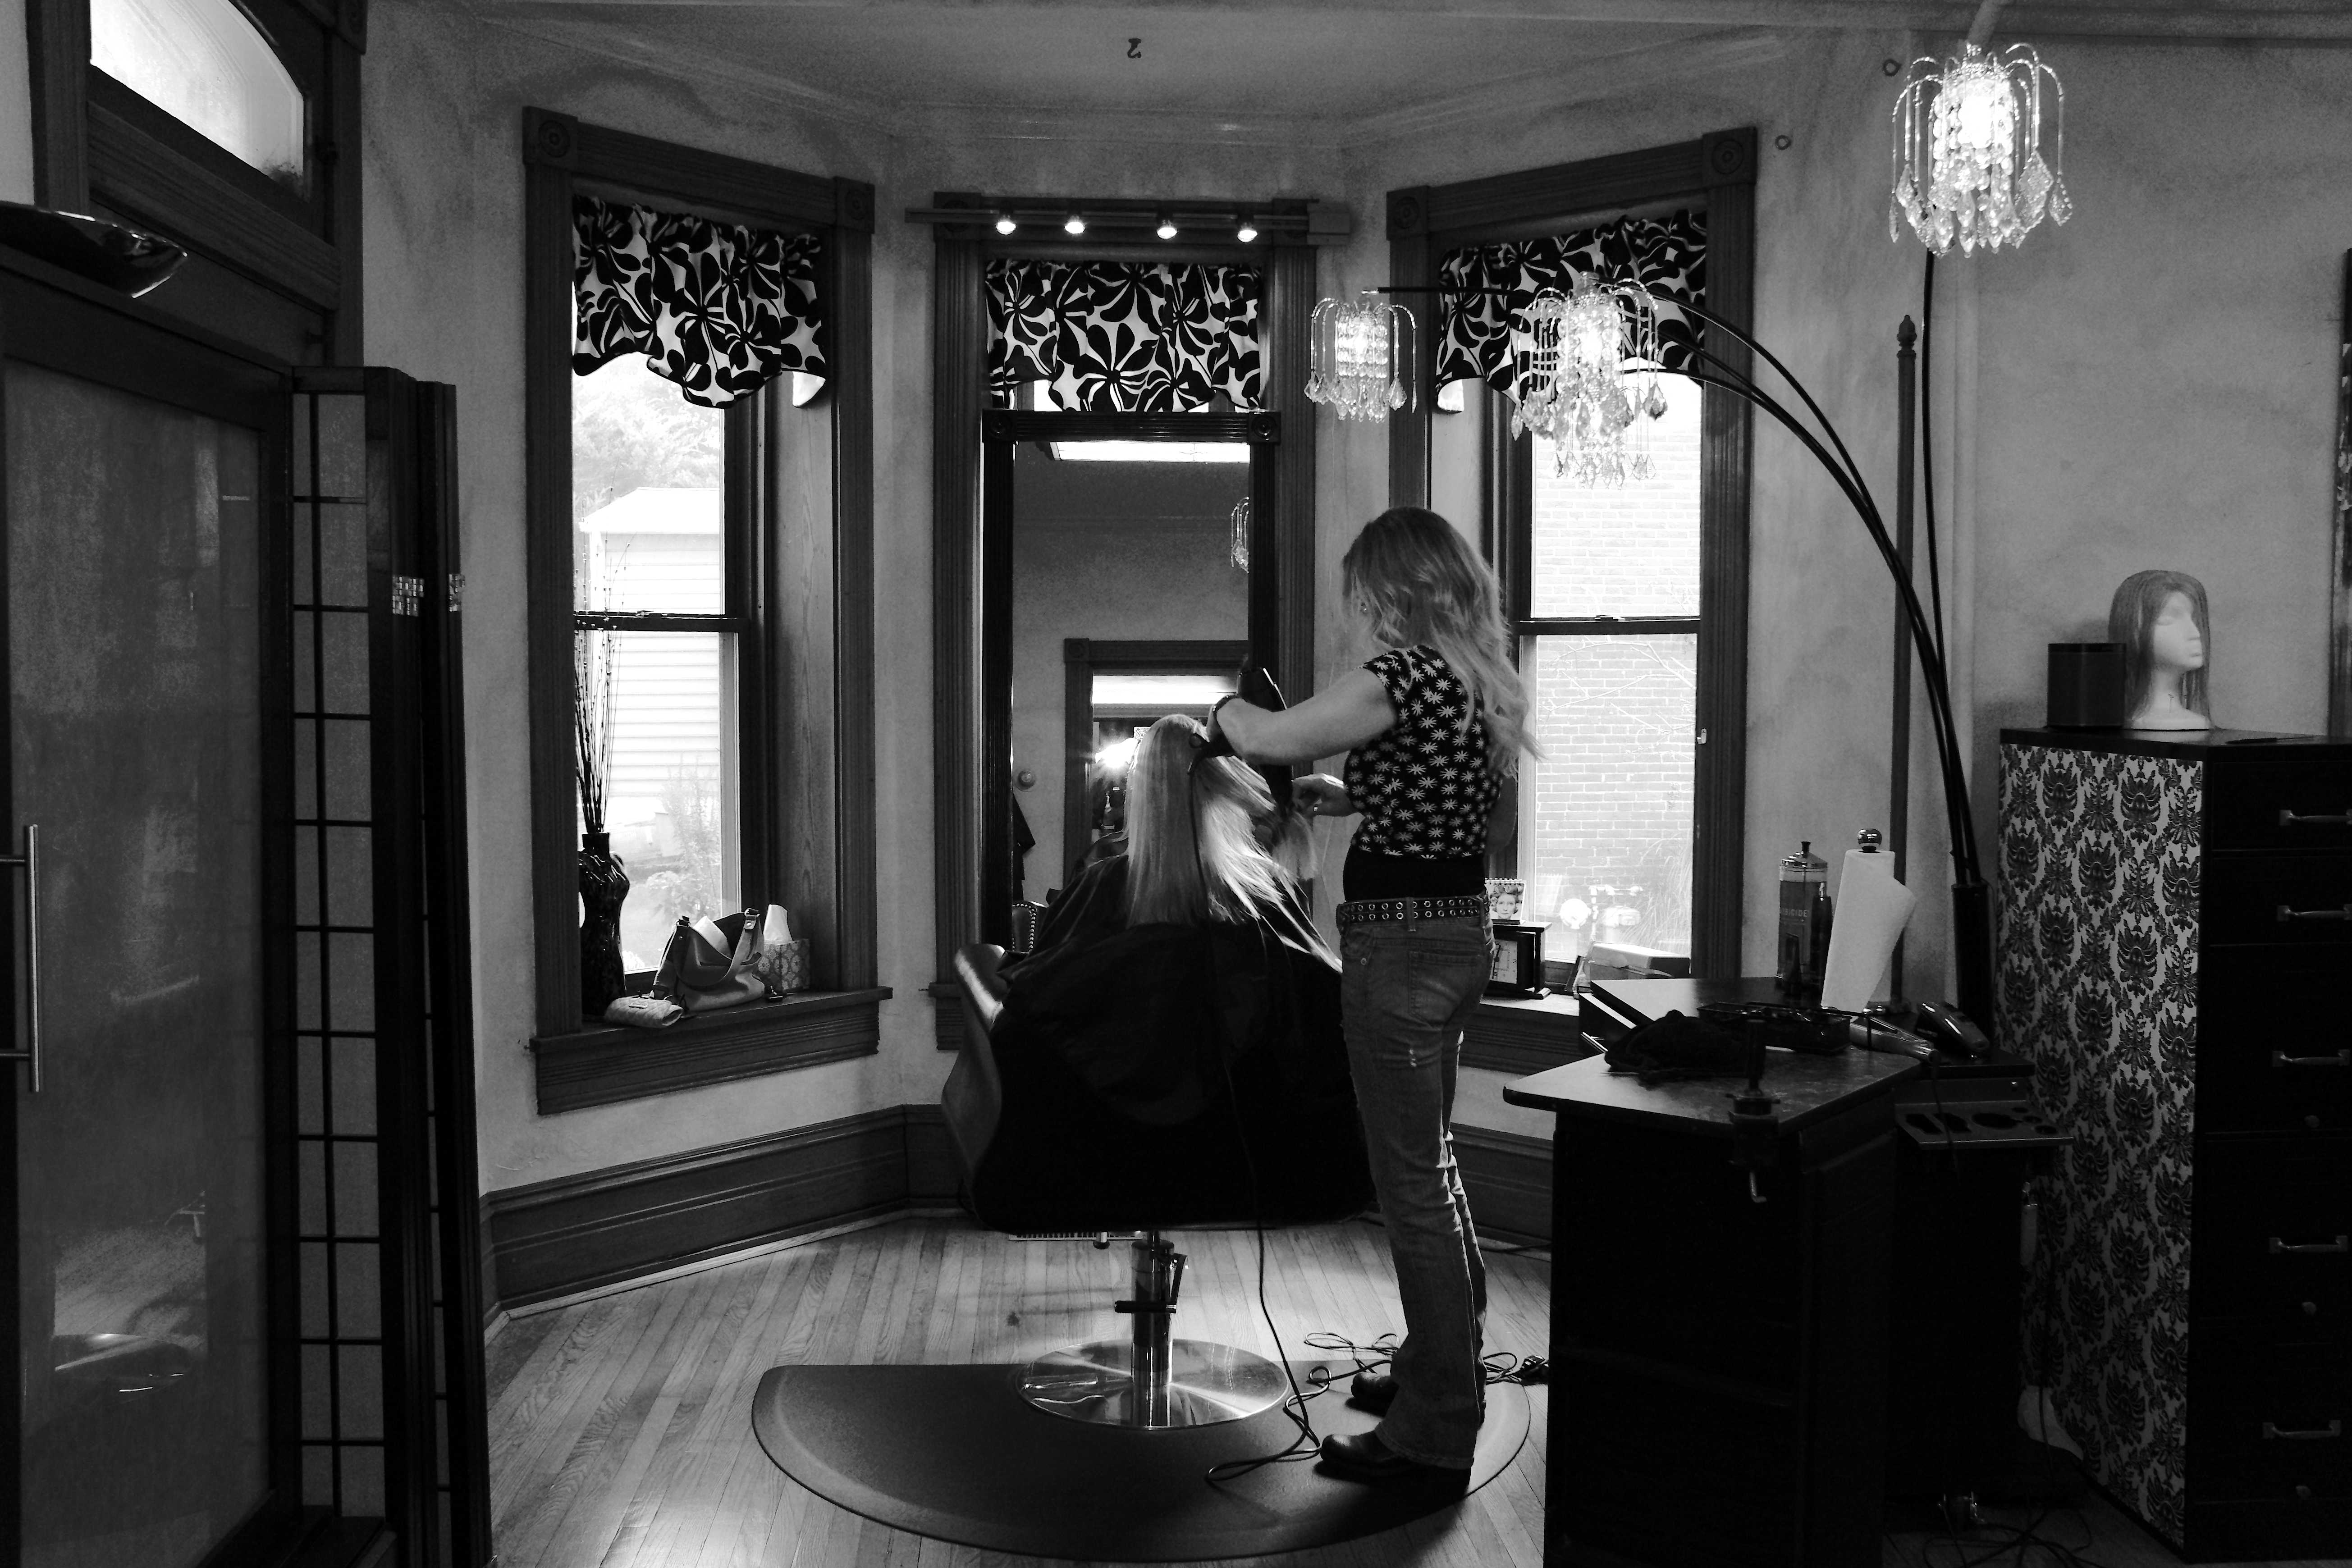 Lancaster pa beauty salon hair services gallery mia for 717 salon lancaster pa